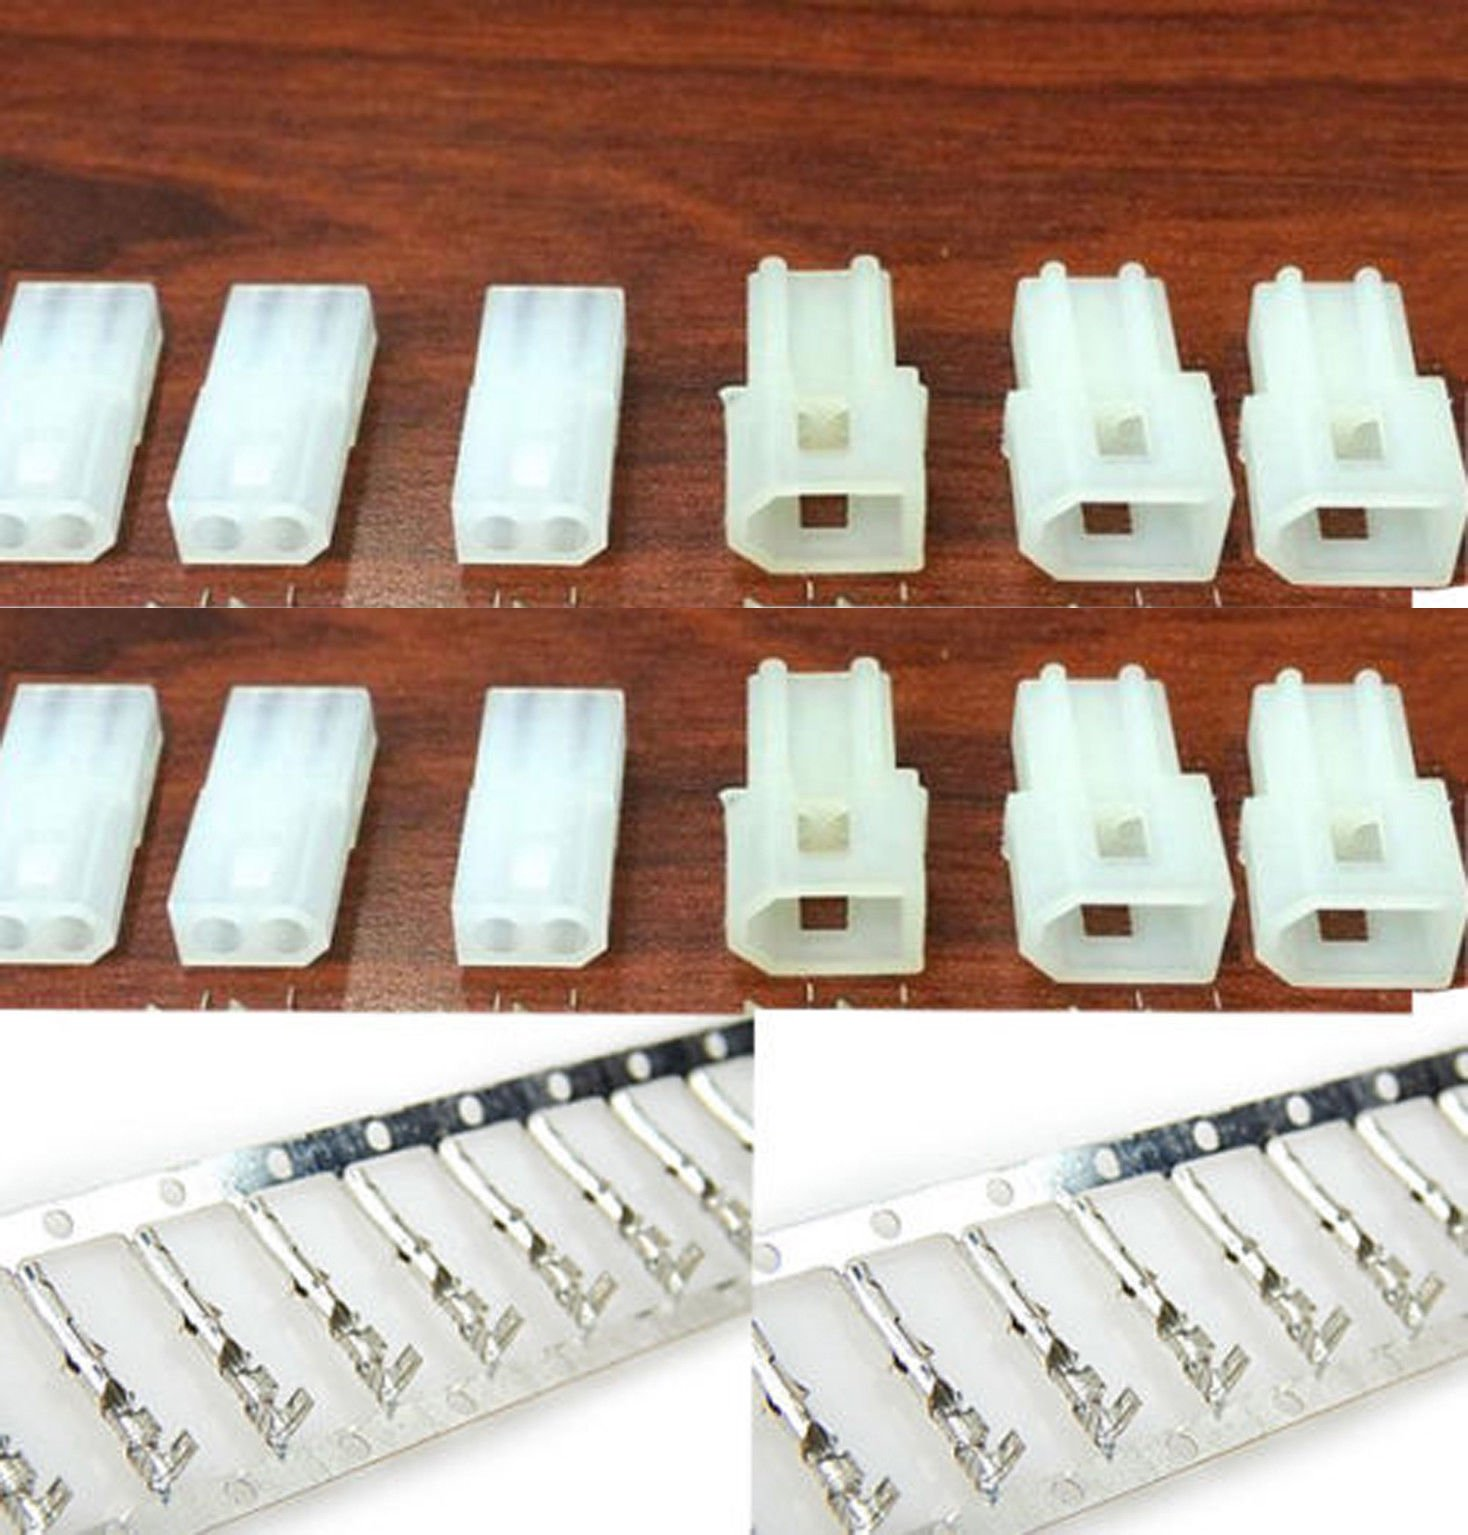 Molex (2-Circuits) Male & Female Receptacle Plug, w/Terminal sockets w/18-24 AWG Standard .062'' Pins, Pitch 3.68mm (Pack of 6 Set